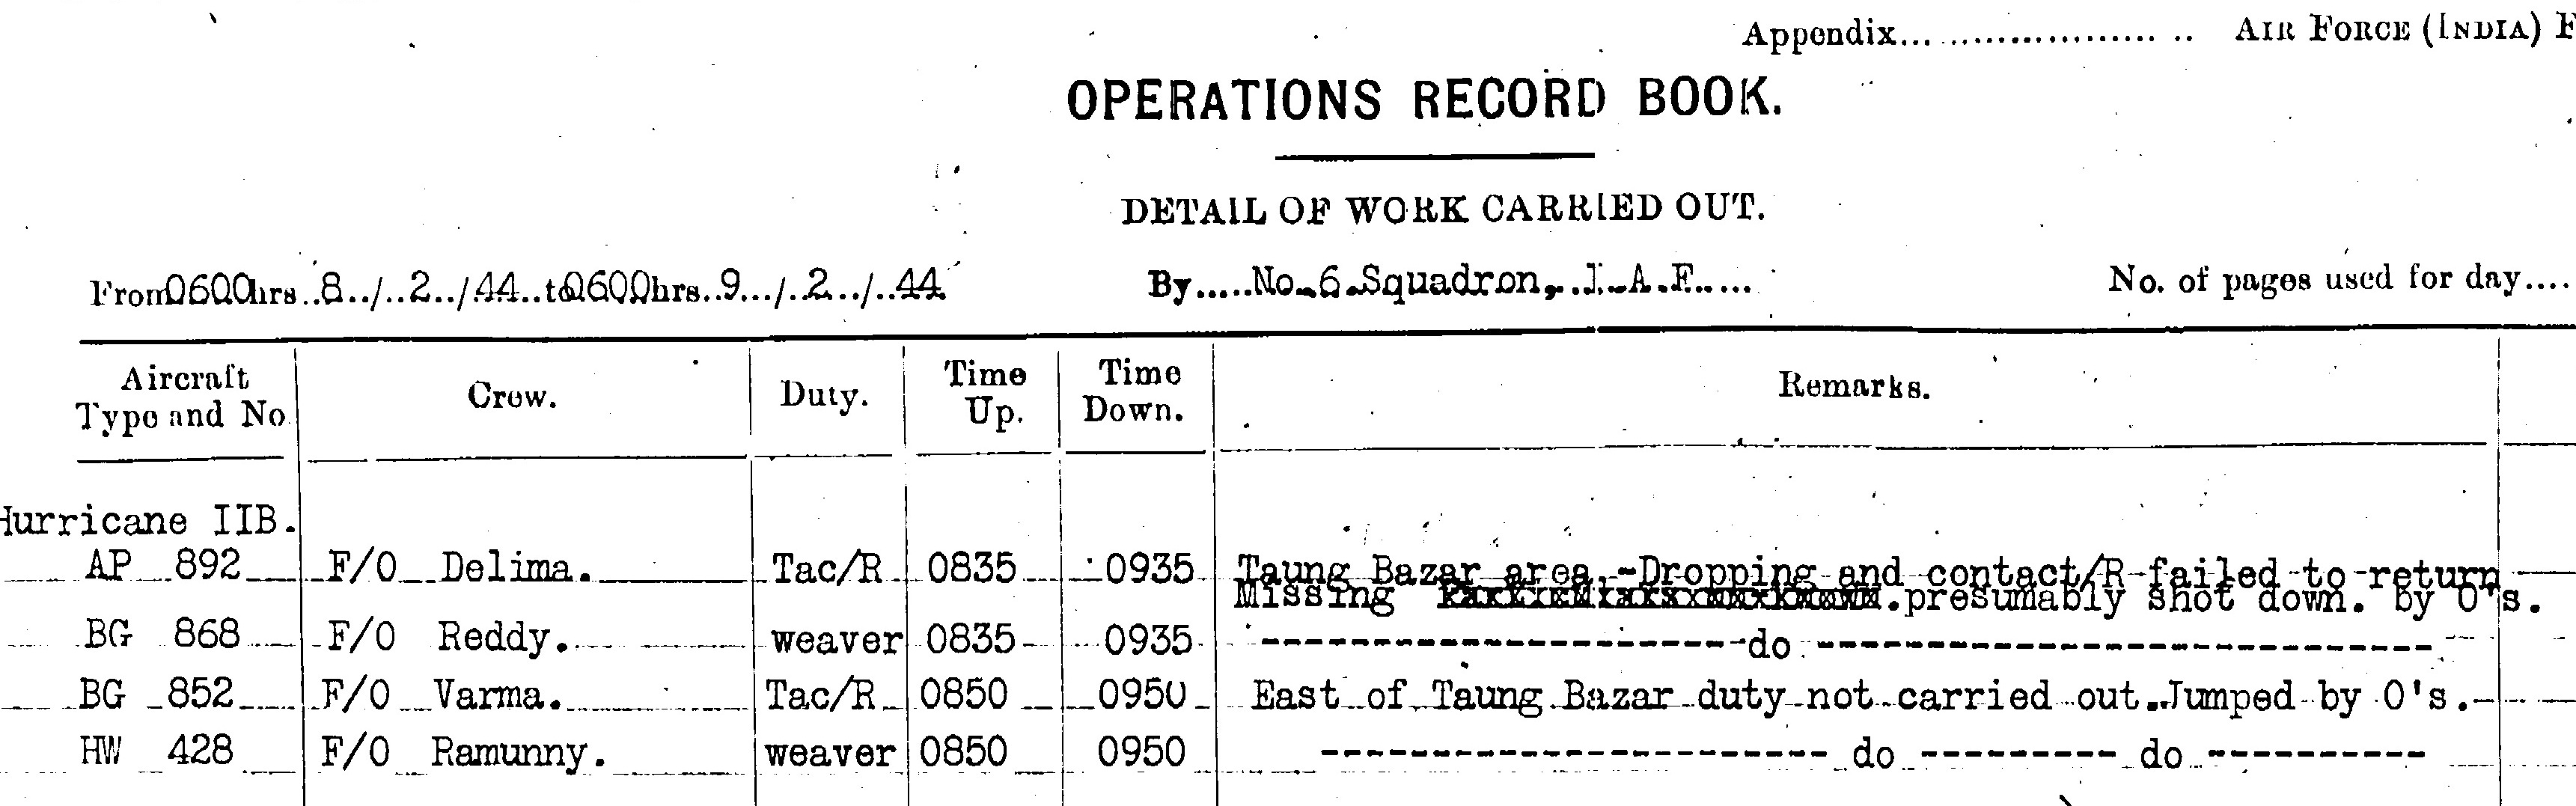 The squadron's Operations Record Book. Image courtesy: Jagan Pillarisetti.